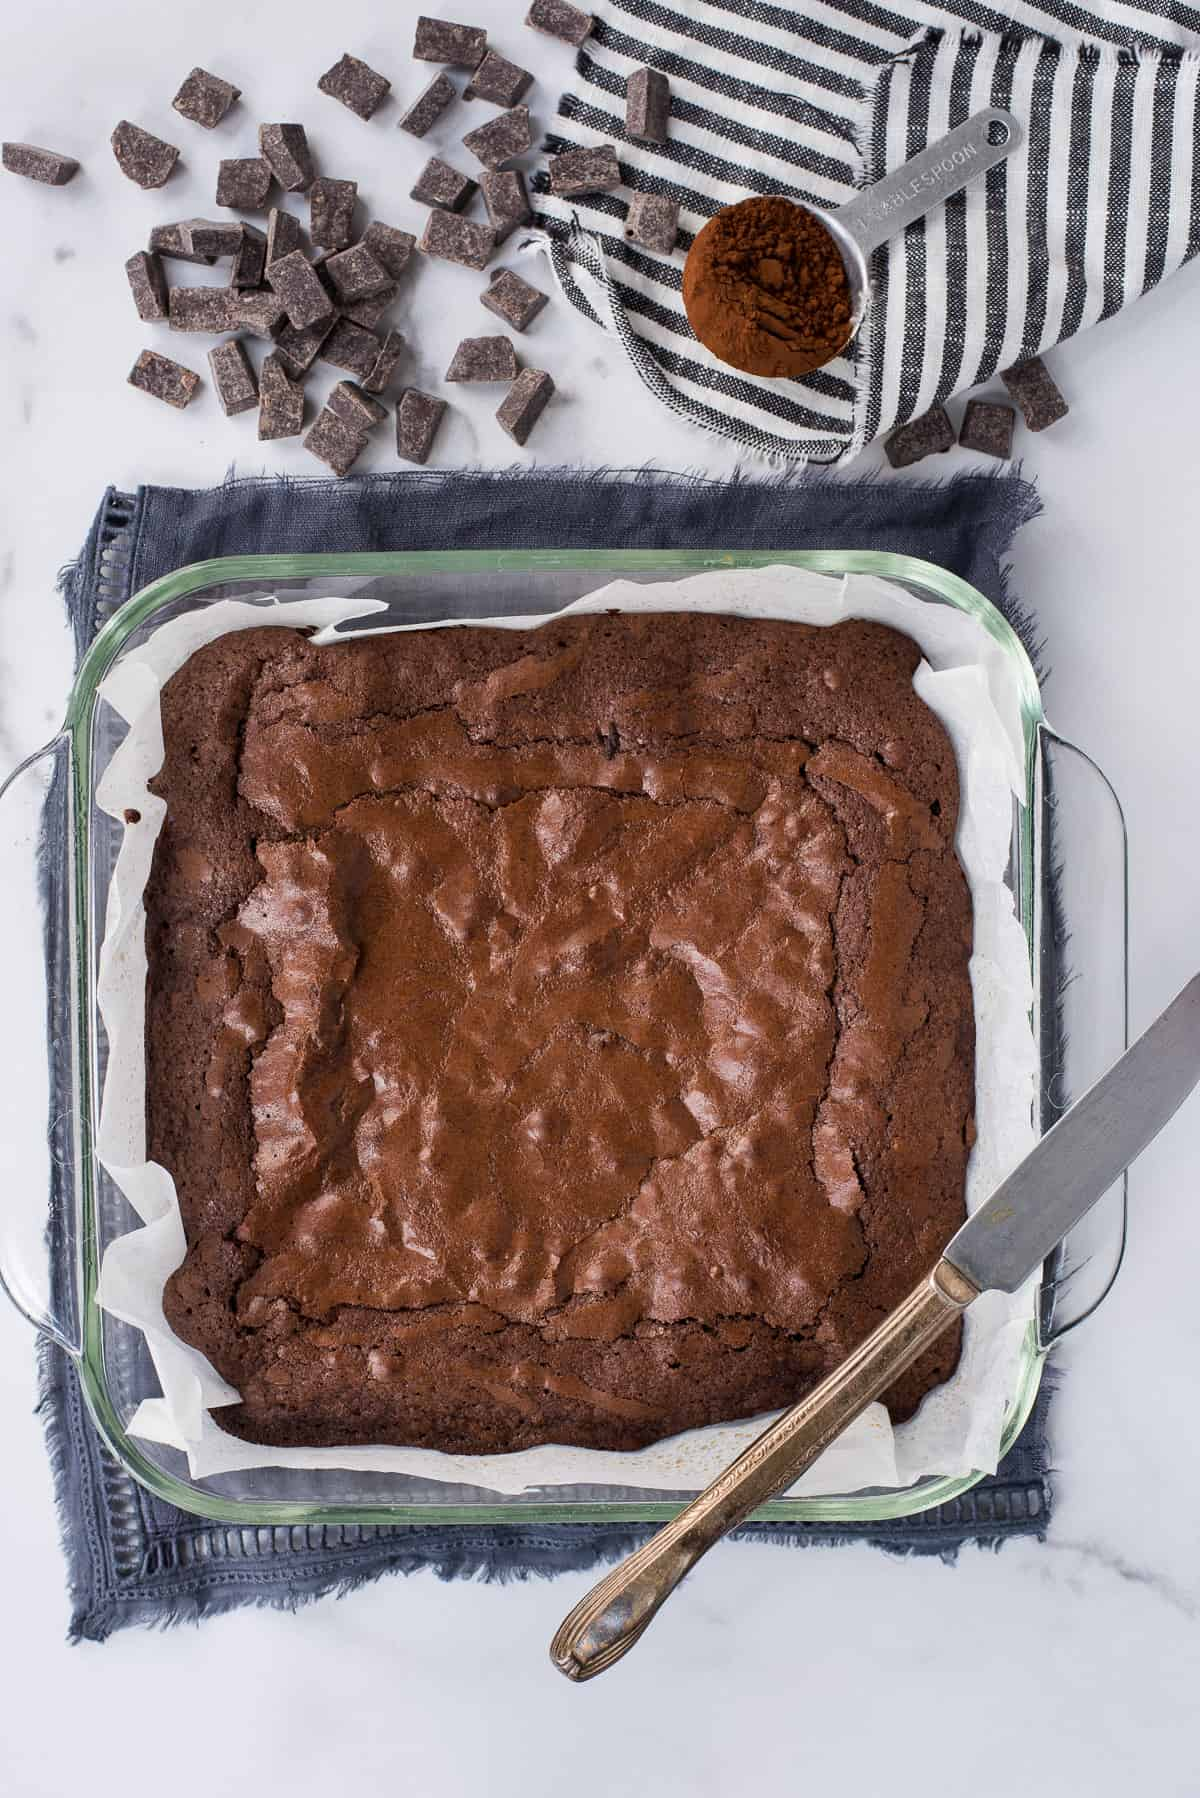 brownies in glass pan on white background